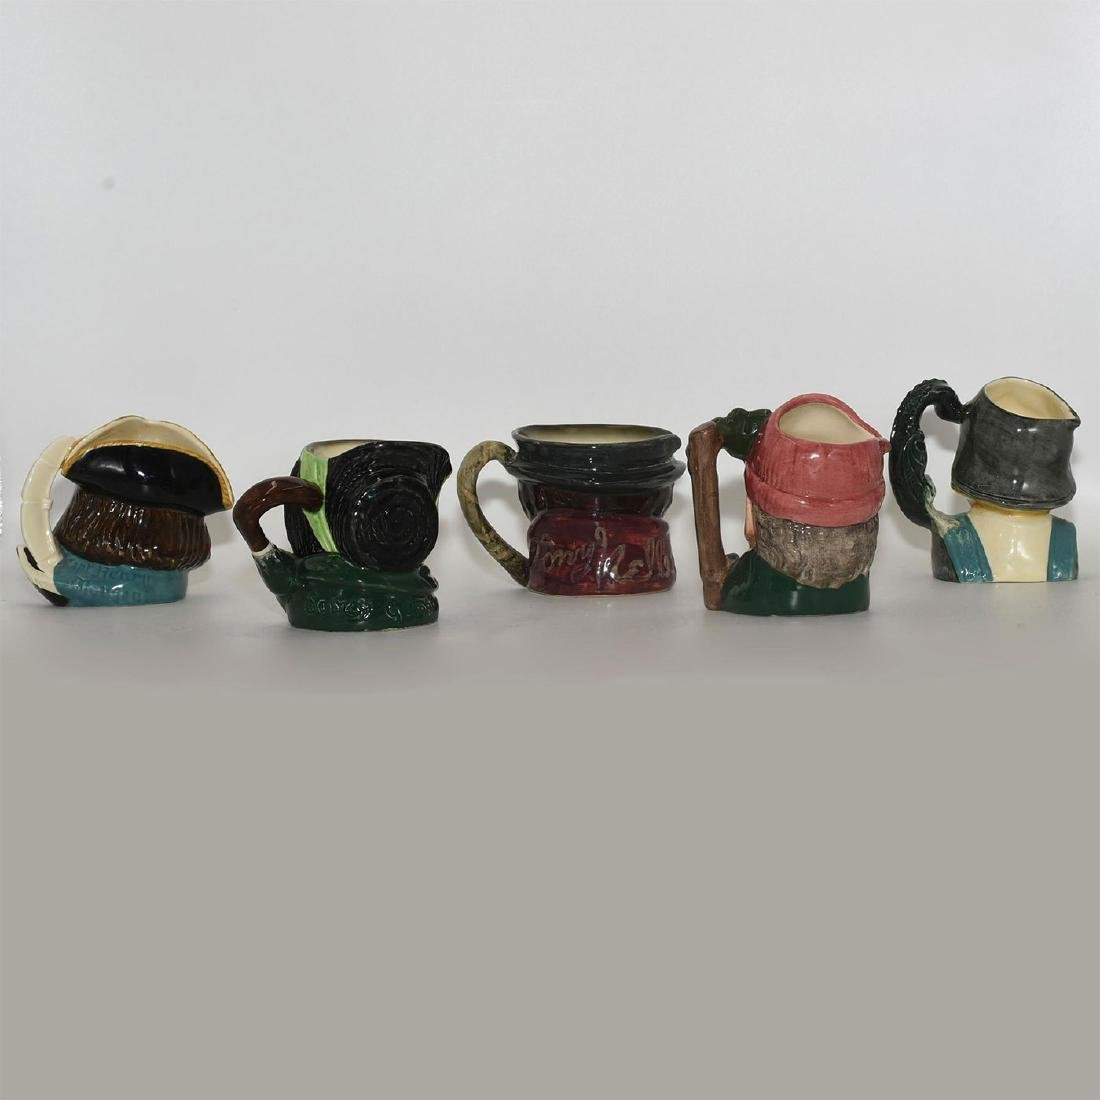 ROYAL DOULTON 5 PC SMALL CHARACTER JUGS - 2